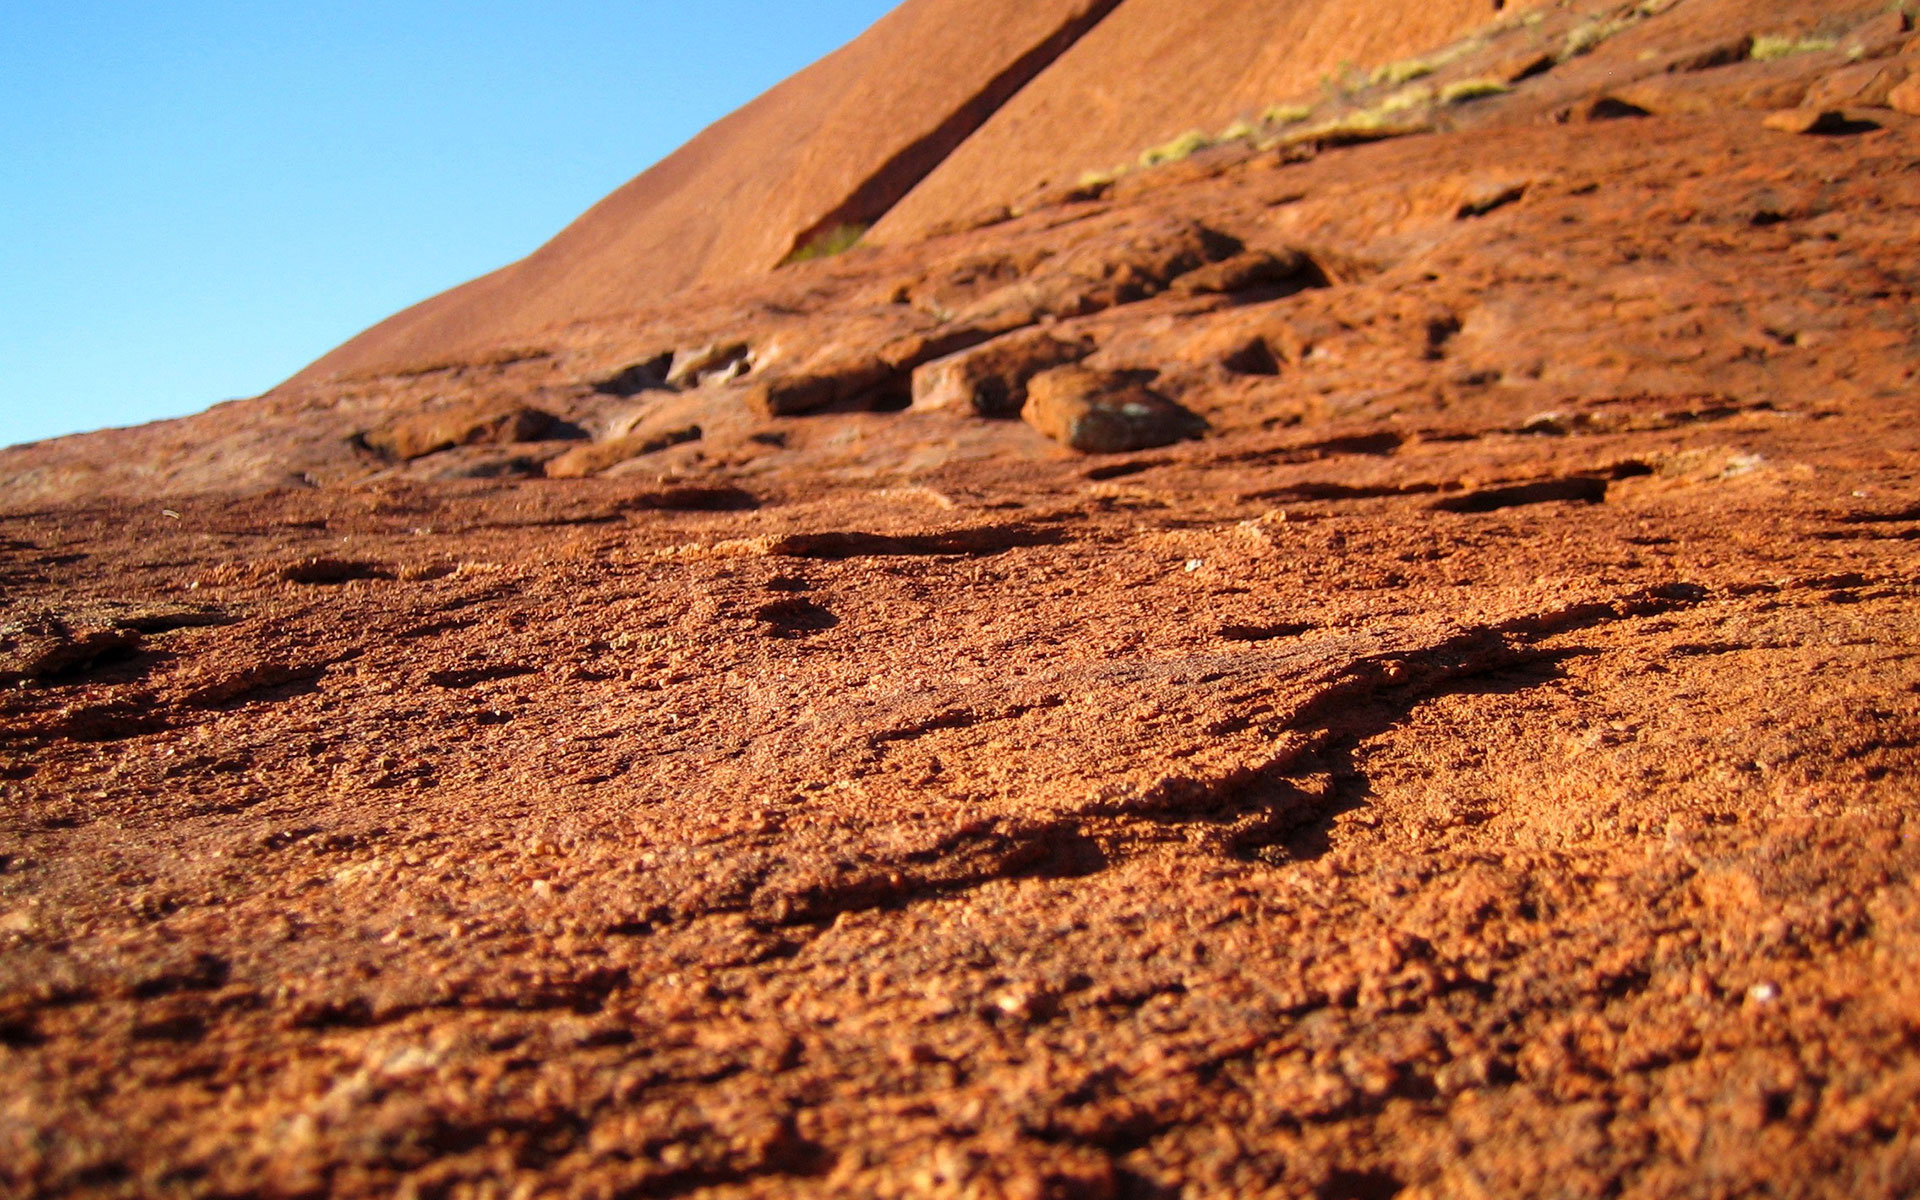 geomorphology in pictures